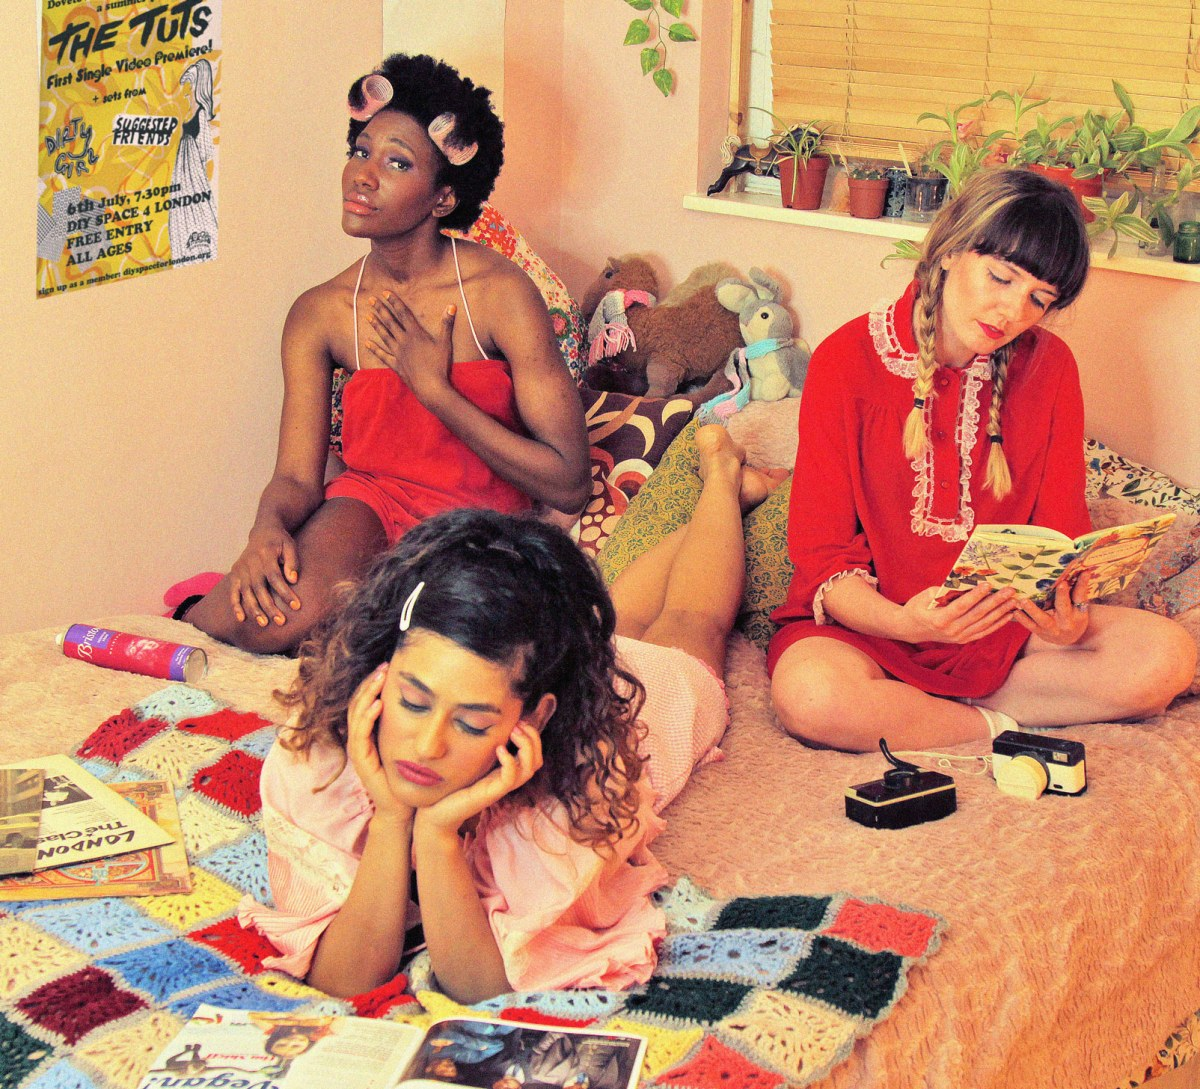 INTERVIEW! The Tuts talk sexism in music, their upcoming album, and their DIYaesthetic